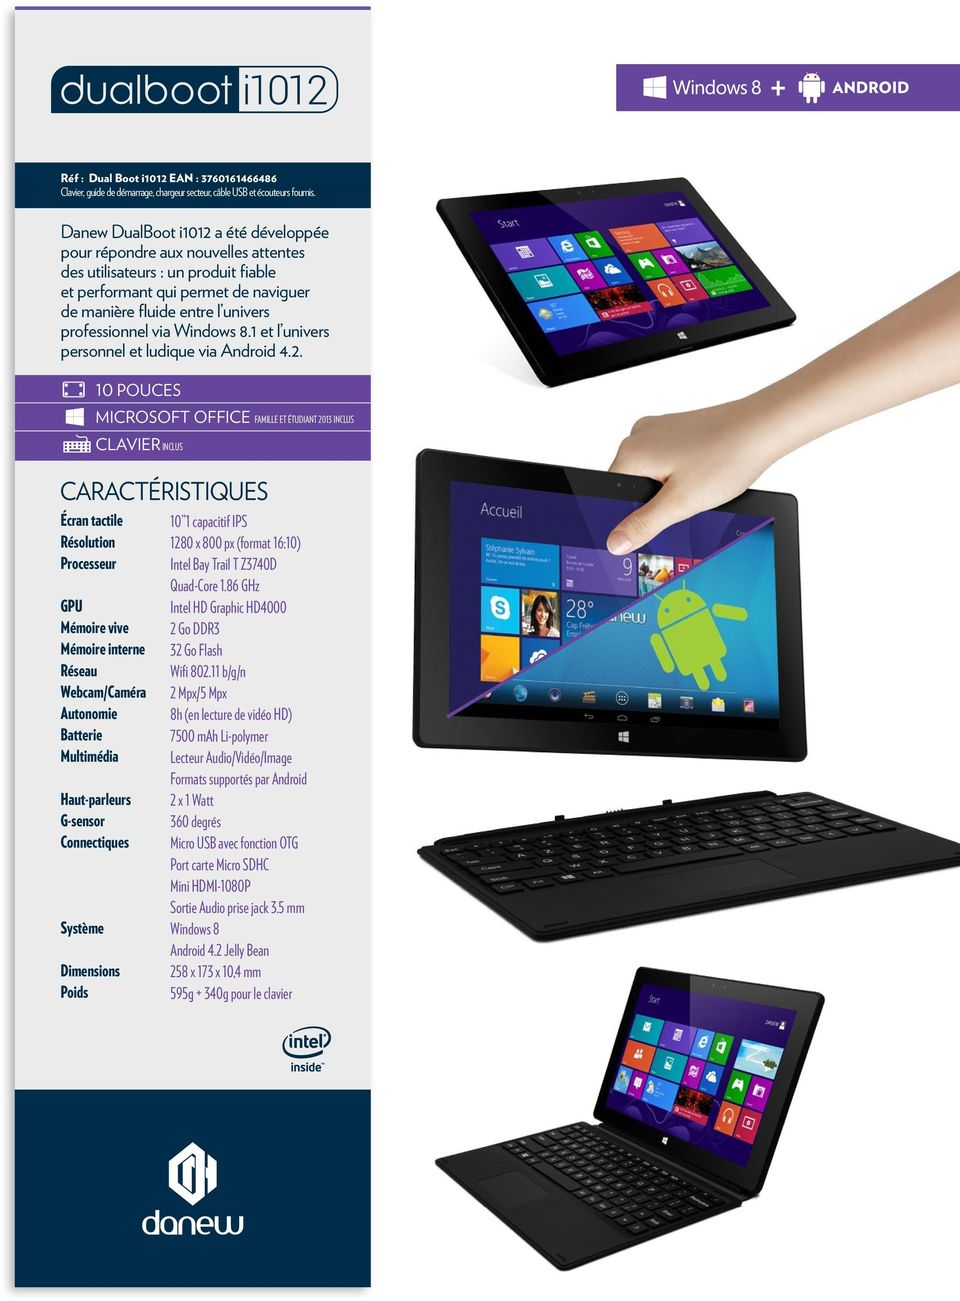 via Windows 8.1 et l univers personnel et ludique via Android 4.2.